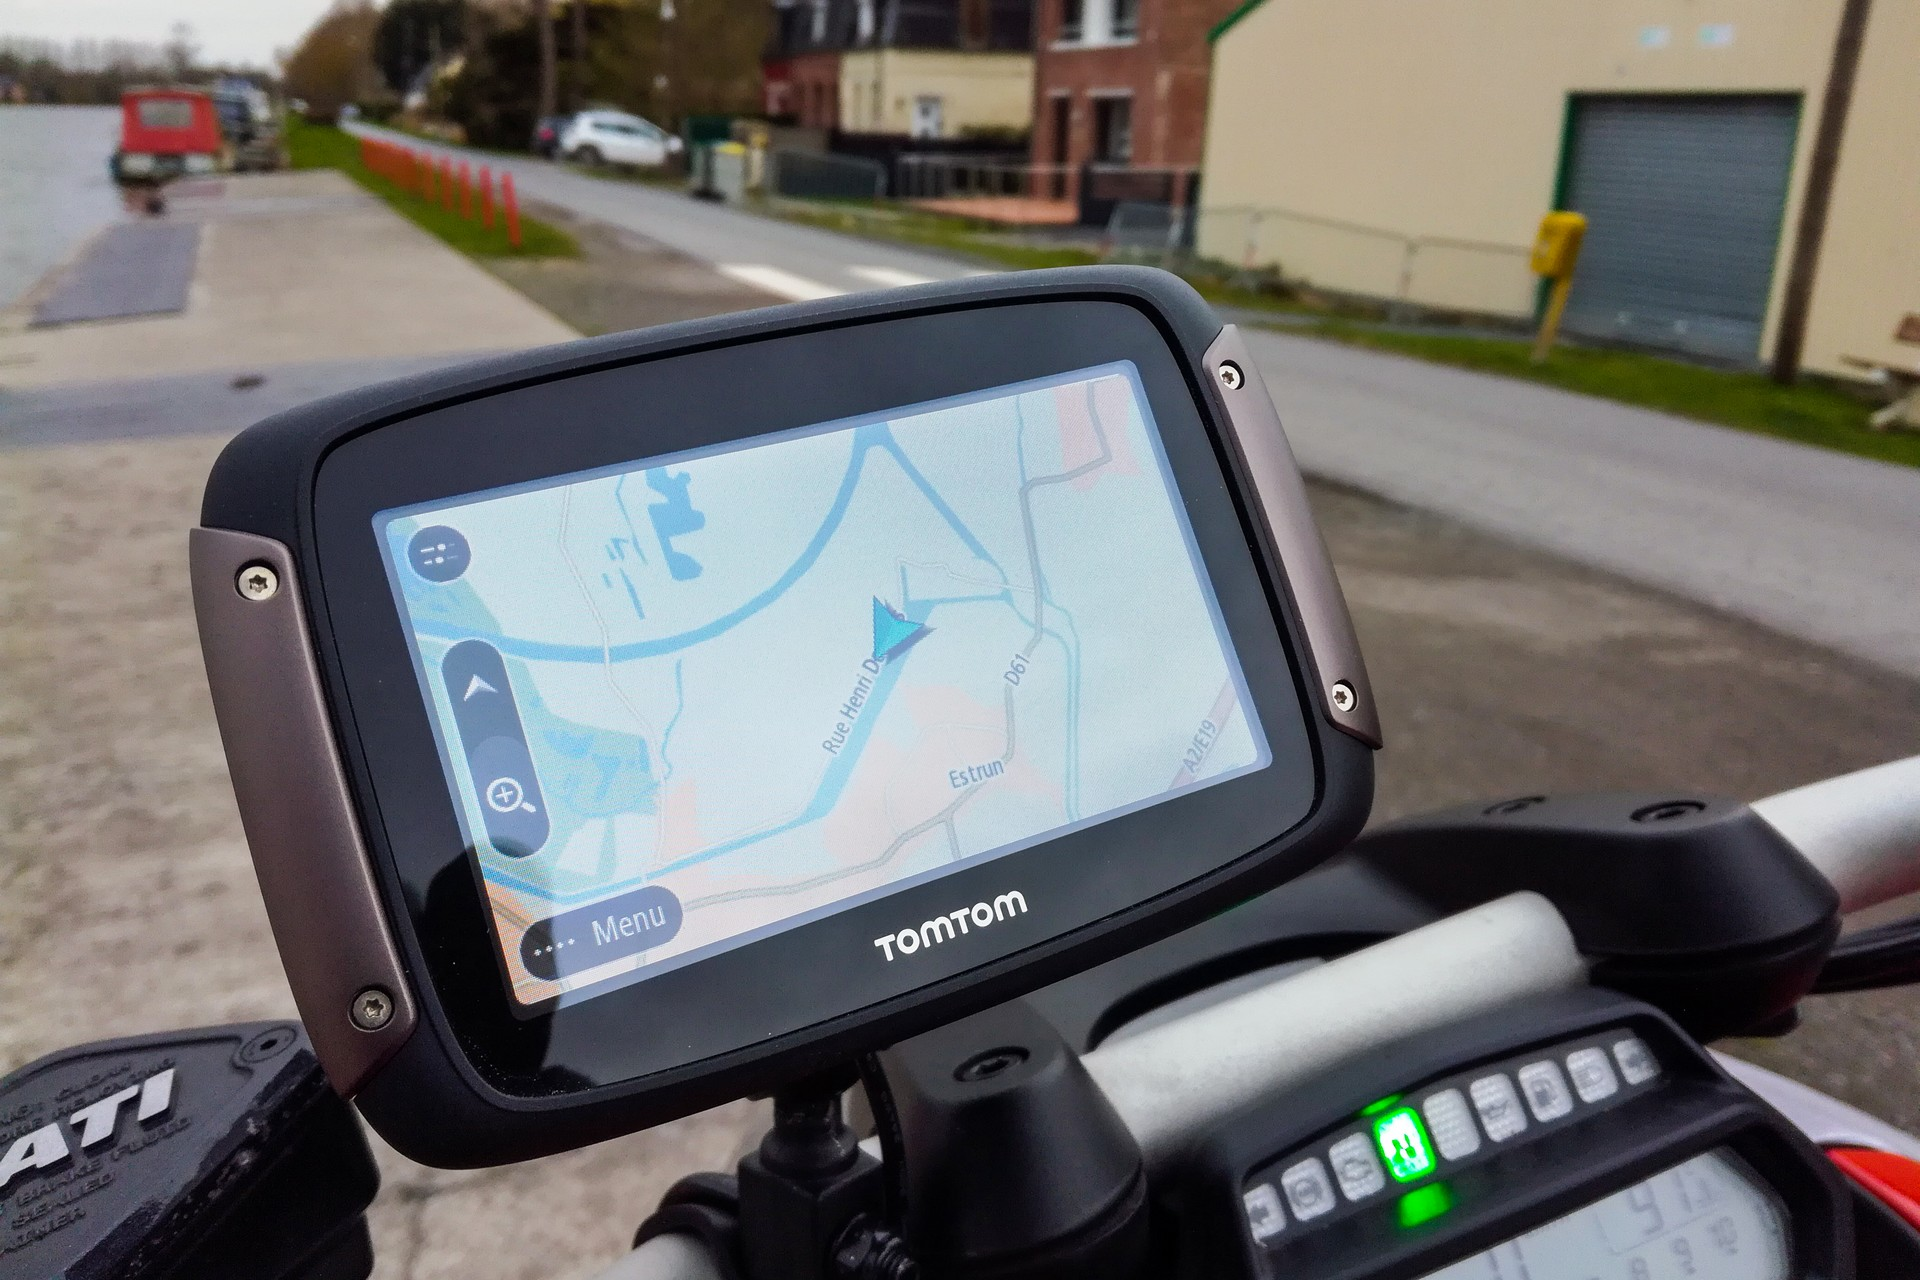 gps tomtom rider 450 essai et tour d 39 horizon des solutions logicielles. Black Bedroom Furniture Sets. Home Design Ideas